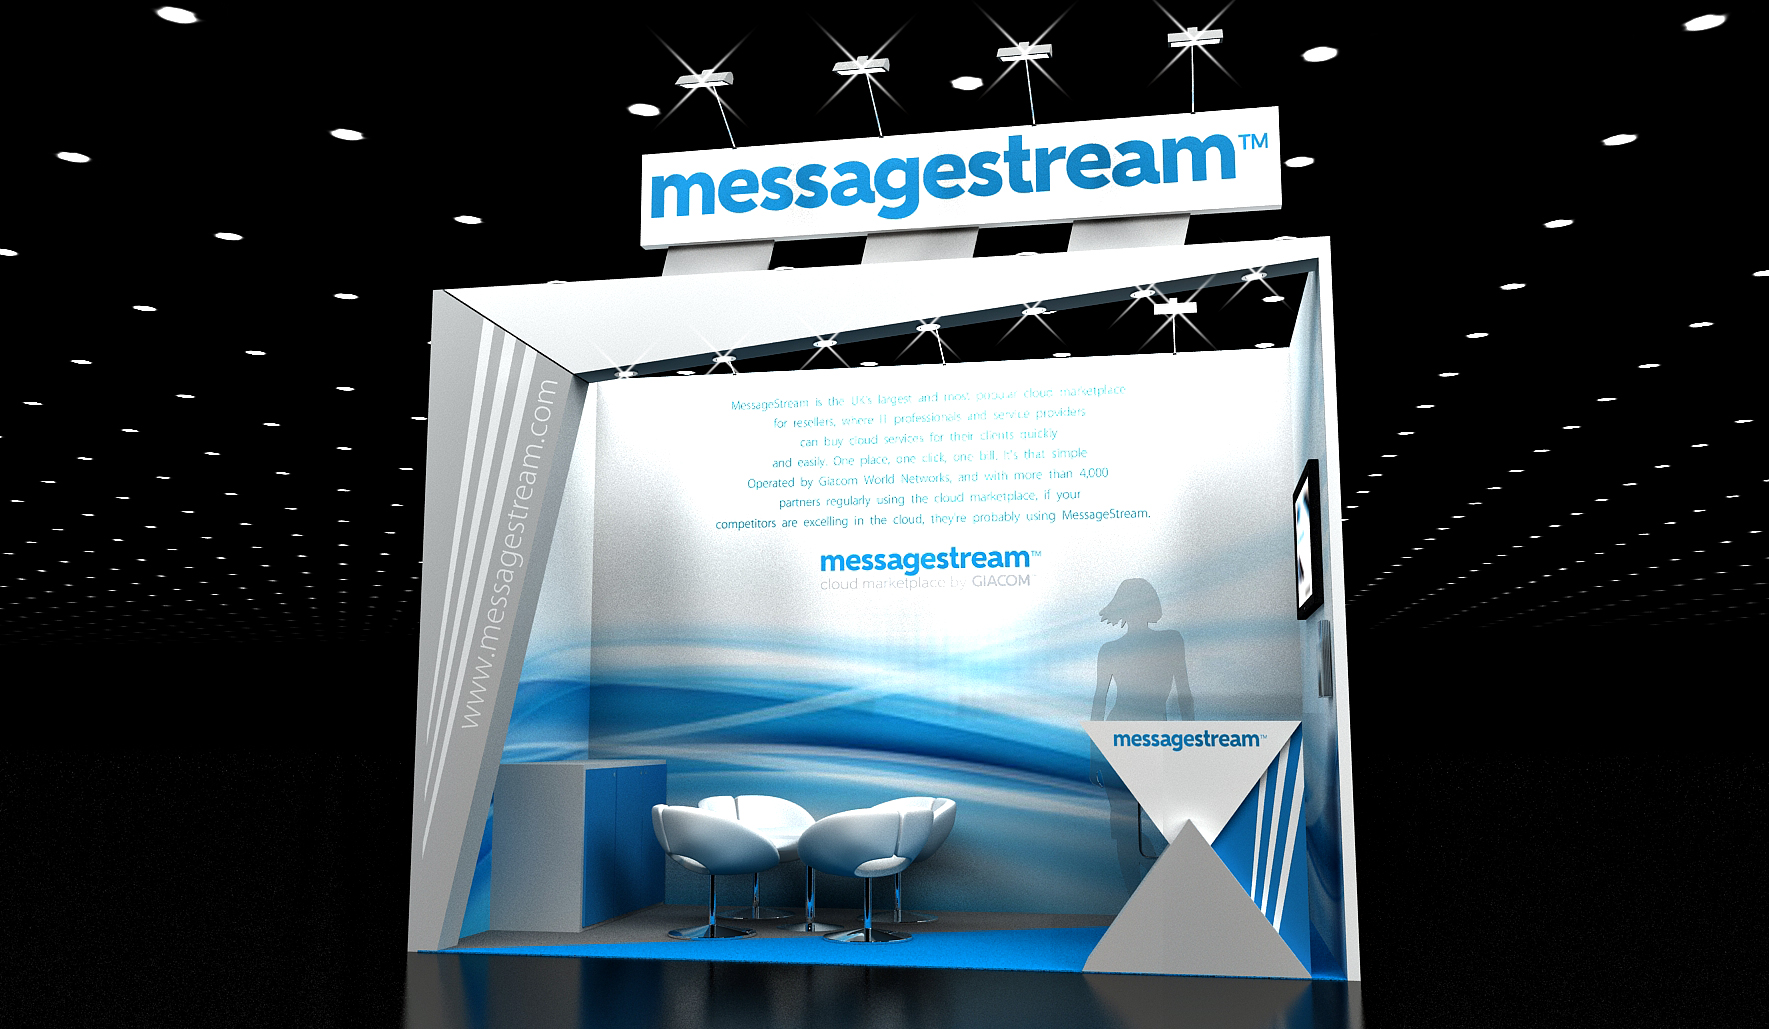 Messagestream.jpg